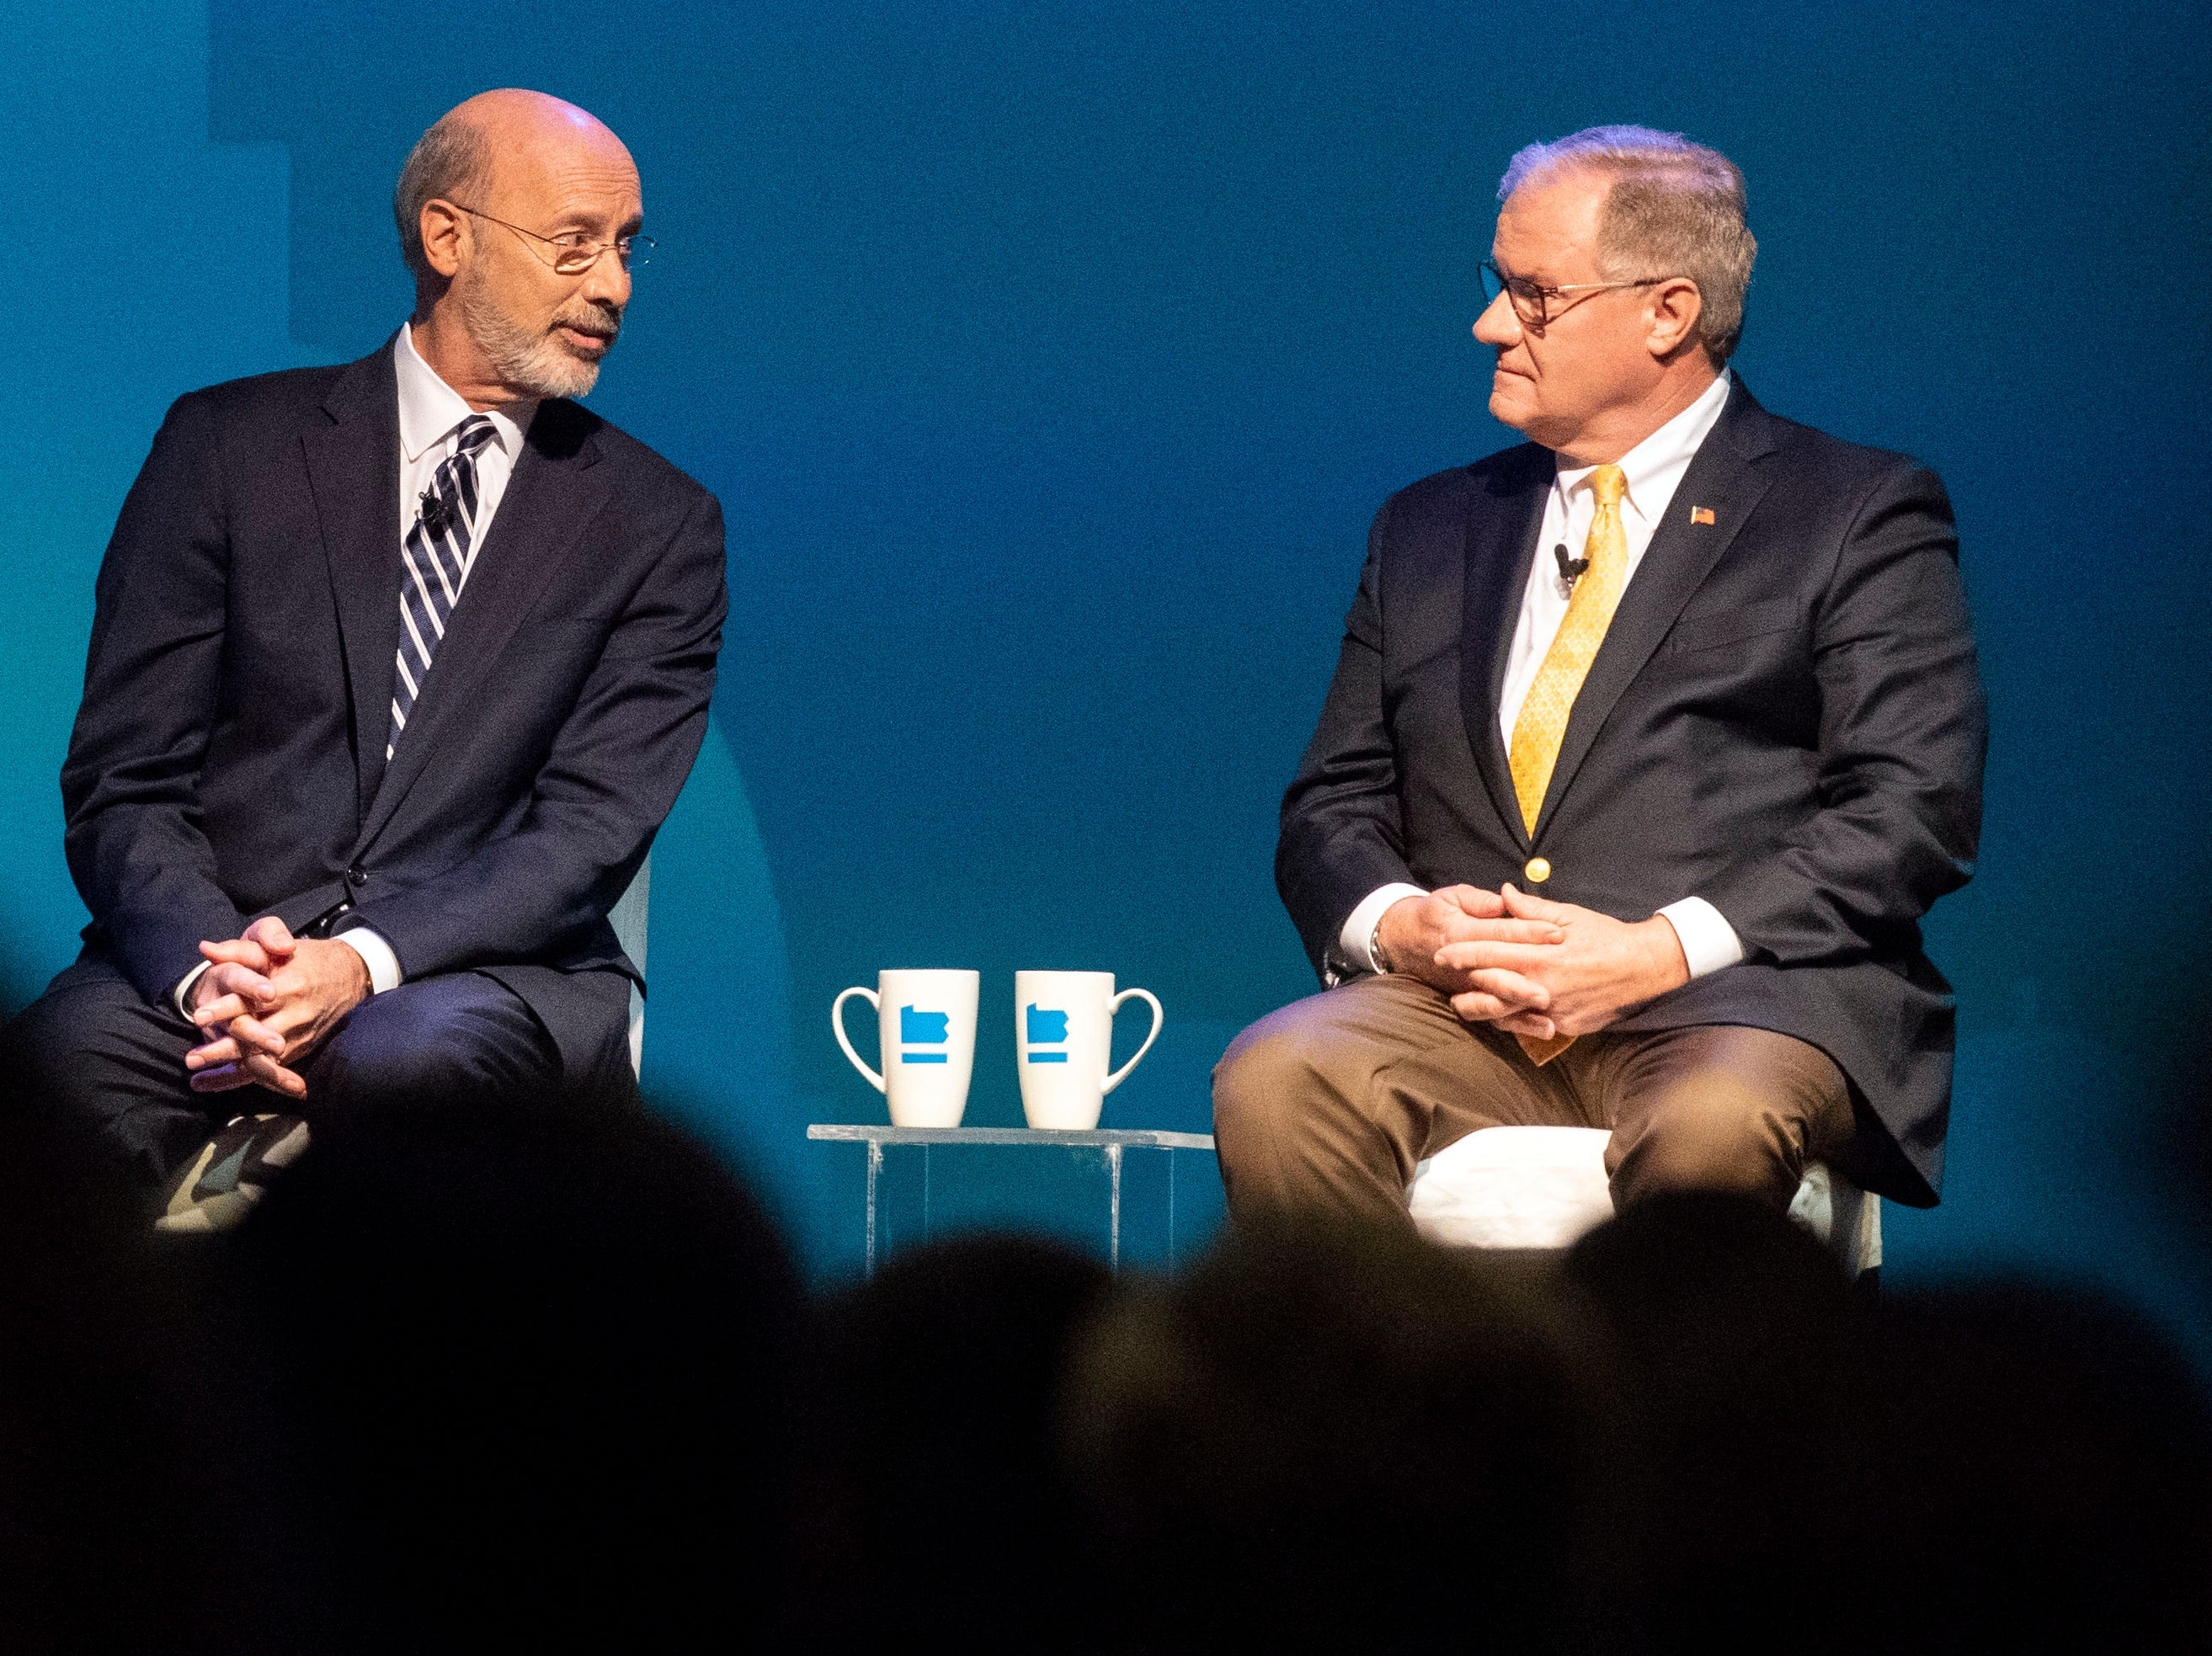 Democratic Gov. Tom Wolf, middle, speaks to Republican challenger and former state Sen. Scott Wagner, right, during the gubernatorial debate at Hershey Lodge on Monday, Oct. 1, 2018.